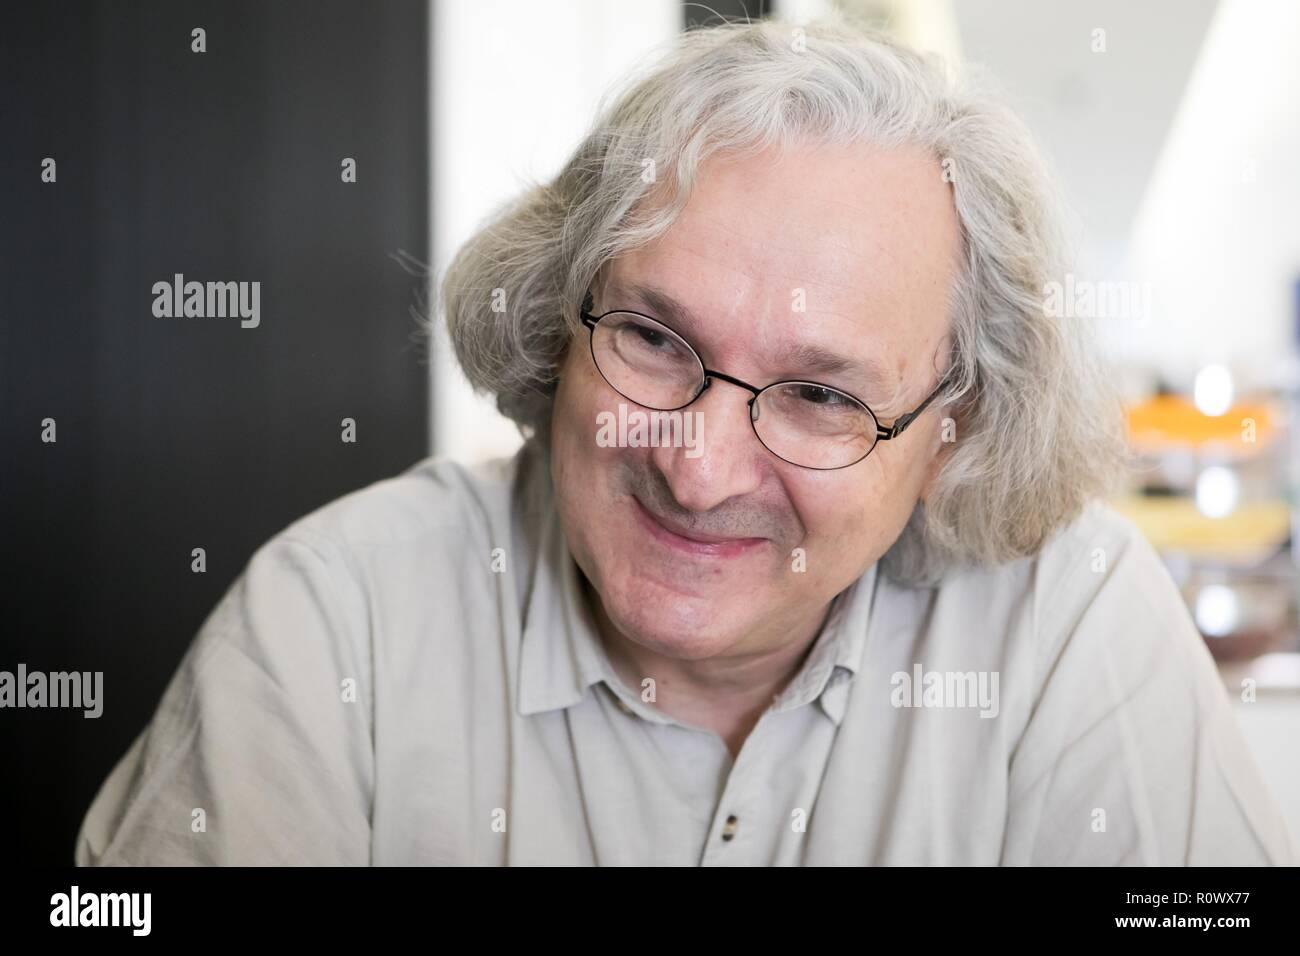 Interview with Etienne Ghys, a French mathematician. - Stock Image